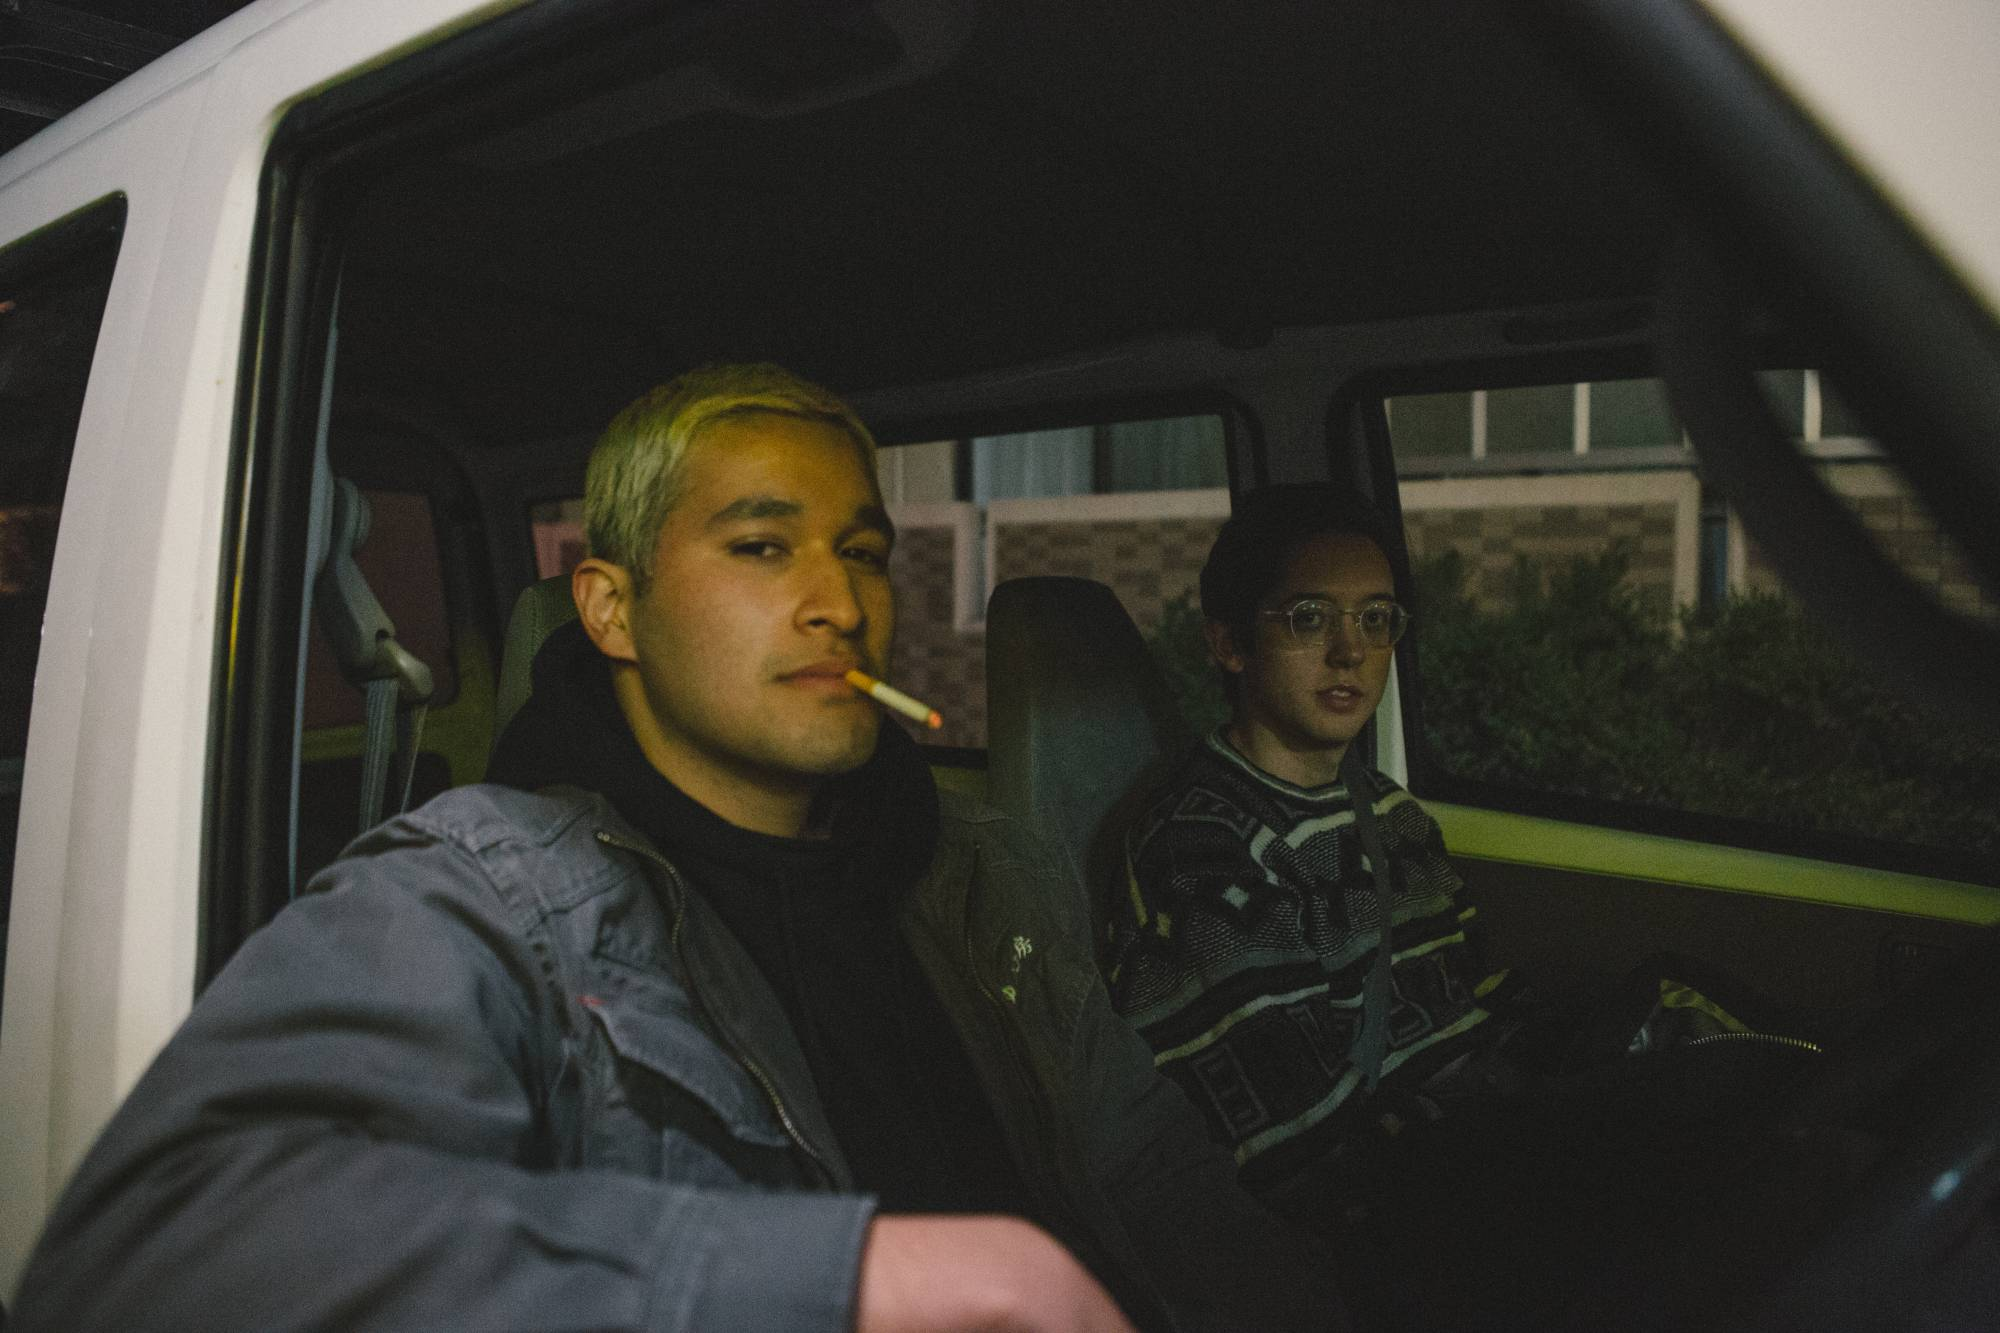 In Bilal Kawazoe's 'Whole,' Usman Kawazoe (left) and Kai Sandy (right) play two biracial men who bond over coming to terms with their identity while living in Japan.  | © 078